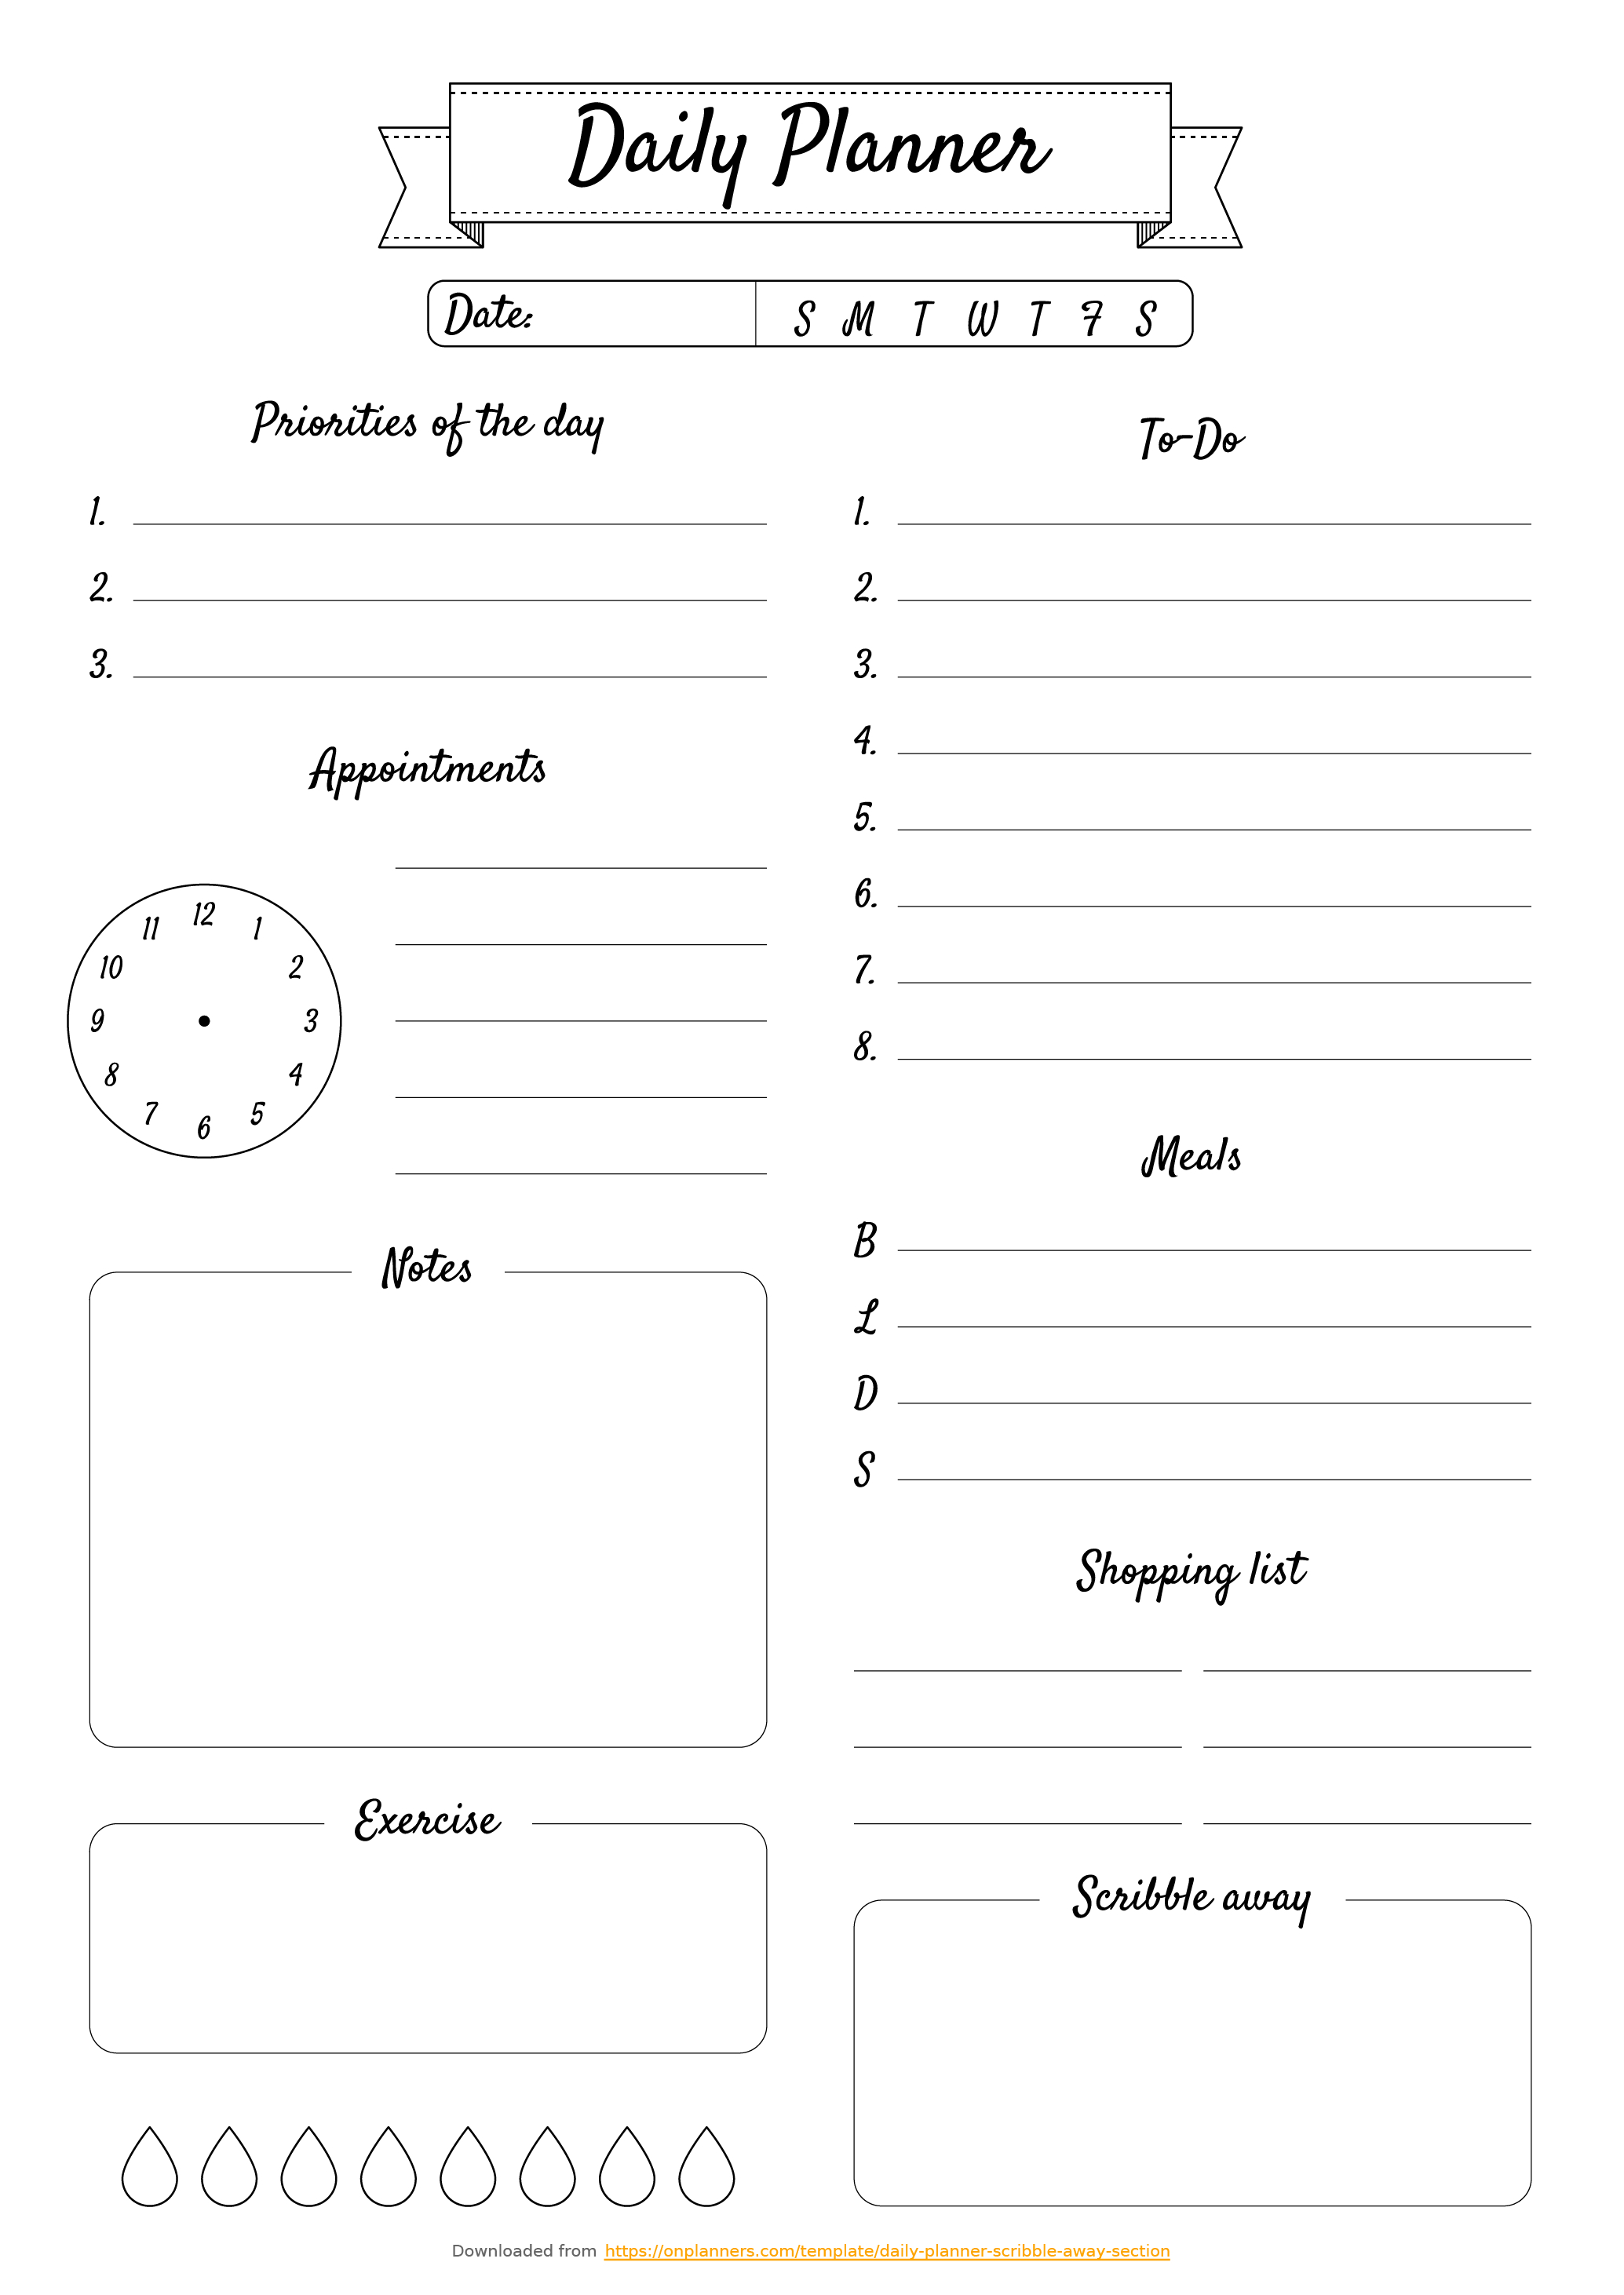 Free Printable Daily Planner With Scribble Away Section Pdf Download regarding Daily Planner Templates Pretty